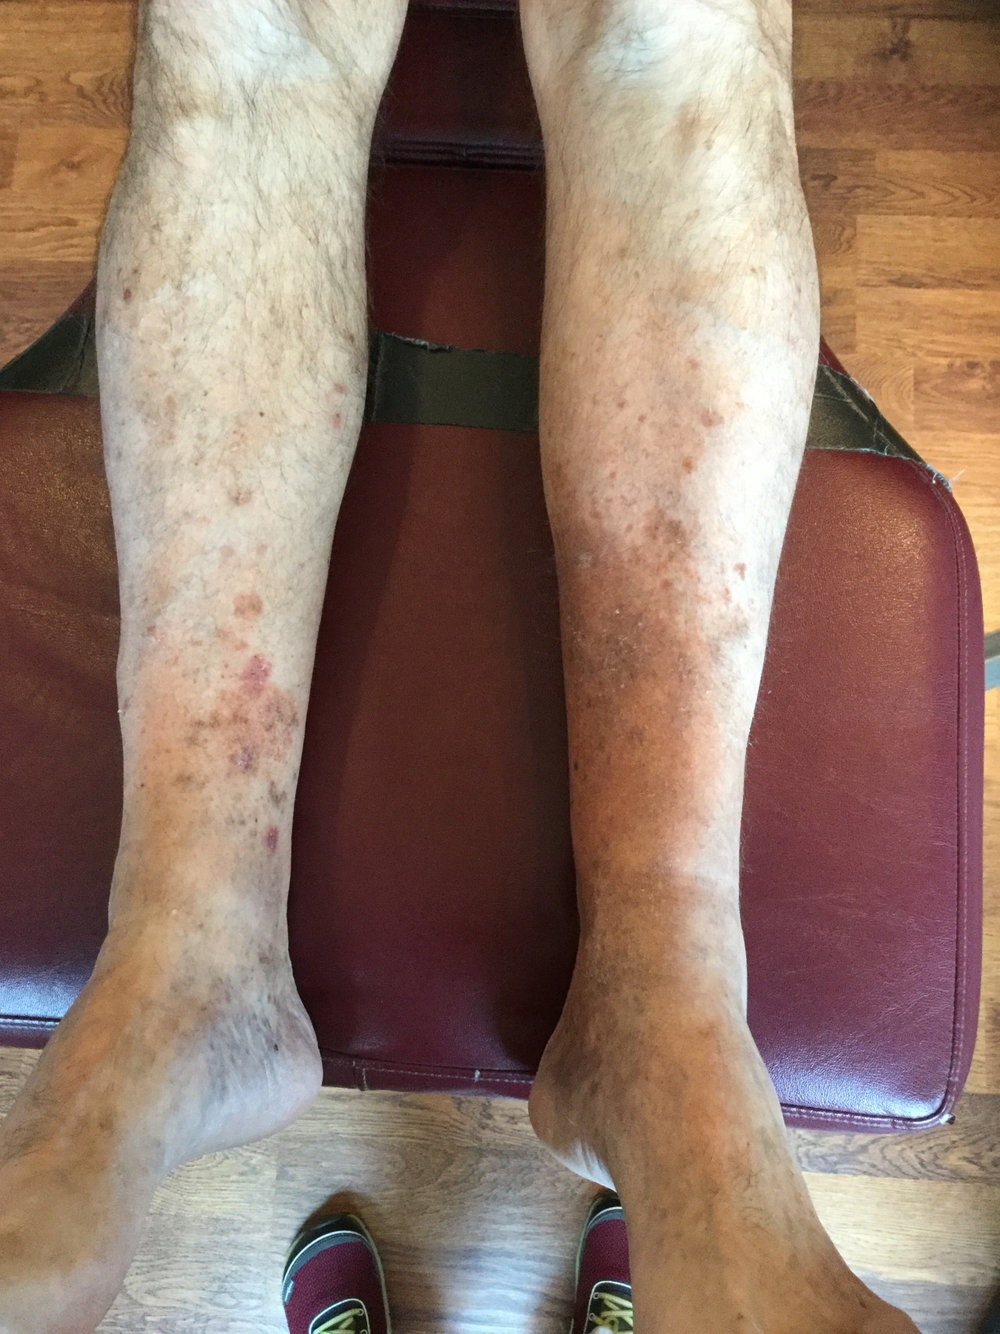 "Seen this?   Take a look at these legs. Have you seen anything similar in a client, patient or perhaps yourself? This gent came in with knee pain  and we were looking at his feet. It turns out that this was a reaction to an antibiotic he had taken 3 years ago!  Hyperpigmentation can be caused by bacterial infections, congenital problems, lime Cafe au Lait spots, endocrine disorders, like Addison's disease and hyperthyroidism, hemochromatosis as well phototoxic reactions from the use of systemic or topical antibiotics (1, 2) or from contact with certain plants or foods in conjunction with sun exposure (3).     Often initially, patients develop an reddened skin response caused by an allergic reaction. The inflammatory response often includes lymphocytes, eosinophils, and edema, which can result in a ""blister like"" reaction on sun-exposed skin. Over time, hyperkeratosis and melanocytic hyperplasia (increased numbers of the cells that give your skin pigmentation) develop, causing hyperpigmentation (1).    Some medications result directly in hyperpigmentation, without sun exposure, in a diffuse pattern, like on the gent we see here (4-9). The tables included in reference 2 can provide additional clues  Keep your eyes open! Who knows what the medications may have done to thwart your efforts in the healing response!    Gould JW, Mercurio MG, Elmets CA. Cutaneous photosensitivity diseases induced by exogenous agents.  J Am Acad Dermatol . 1995;33:551–73.    http://www.aafp.org/afp/2003/1115/p1955.html    Friedlander SF. Contact dermatitis.  Pediatr Rev . 1998;19:166–71   Crowson AN, Magro CM. Recent advances in the pathology of cutaneous drug eruptions. Dermatol Clin . 1999;17:537–60.,viii   Pepine M, Flowers FP, Ramos-Caro FA. Extensive cutaneous hyperpigmentation caused by minocycline.  J Am Acad Dermatol . 1993;28(2 pt 2):292–5.   Kelly AP. Aesthetic considerations in patients of color.  Dermatol Clin . 1997;15:687–93.   Goroll AH, Mulley AG Jr, eds. Primary care medicine: office evaluation and management of the adult patient. 4th ed. Philadelphia: Lippincott Williams & Wilkins, 2000   Skin diseases of general importance—part II. In: Cecil RL, Goldman L, Bennett JC. Cecil Textbook of medicine. 21st ed. Philadelphia: Saunders, 2000: 2288–98   Friedlander SF. Contact dermatitis.  Pediatr Rev . 1998;19:166–71."